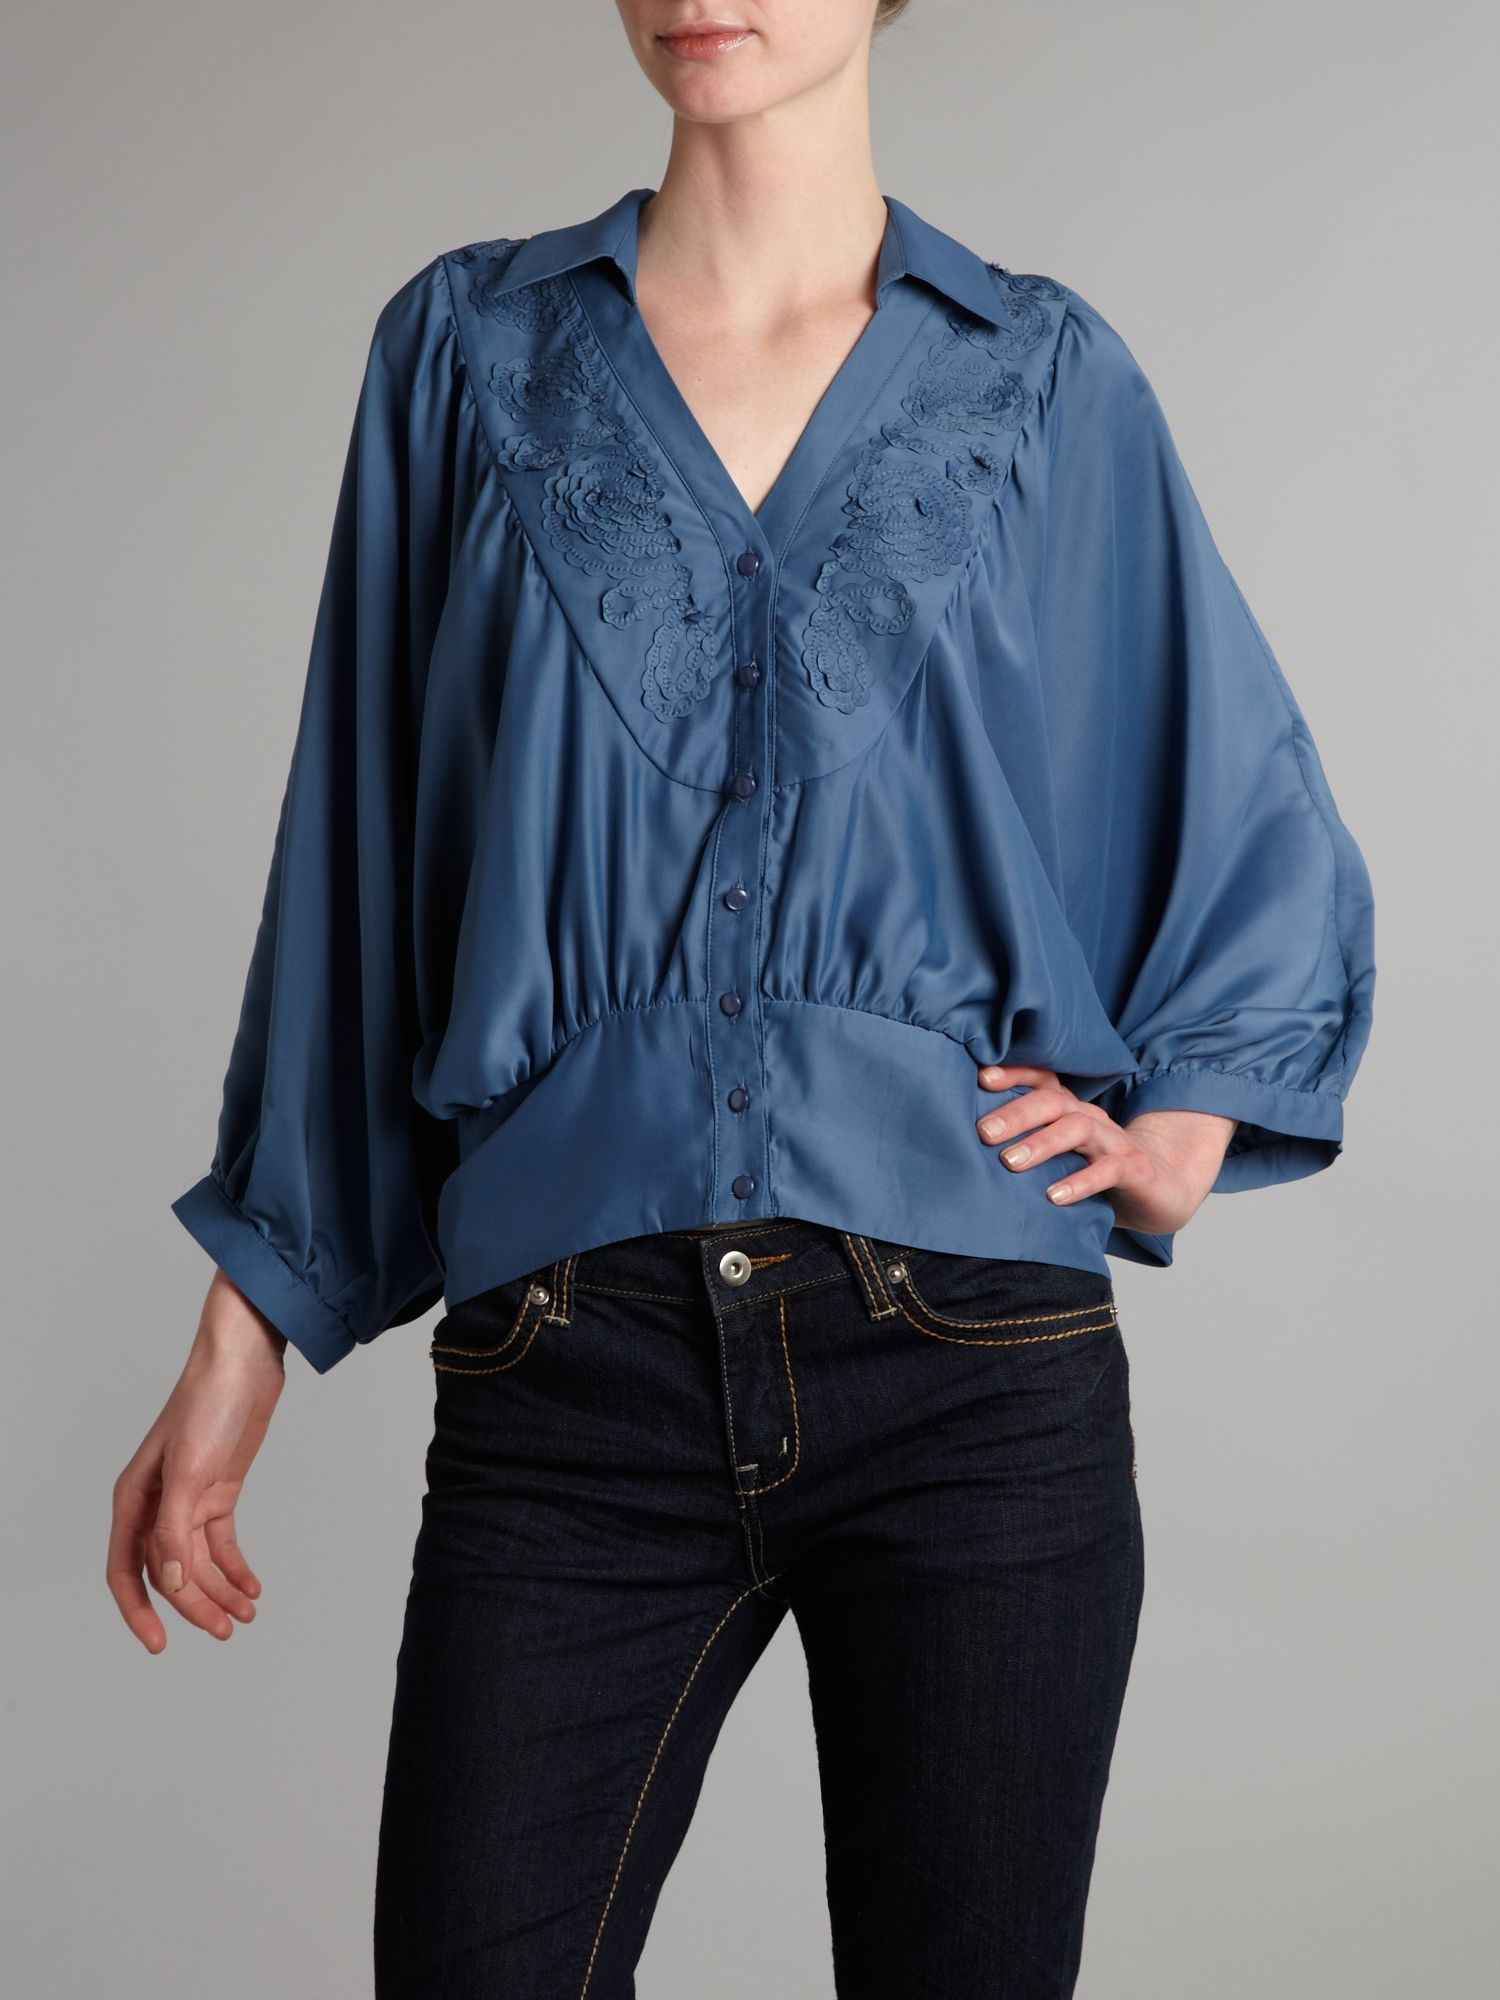 Vivi Boutique floaty batwing blouse